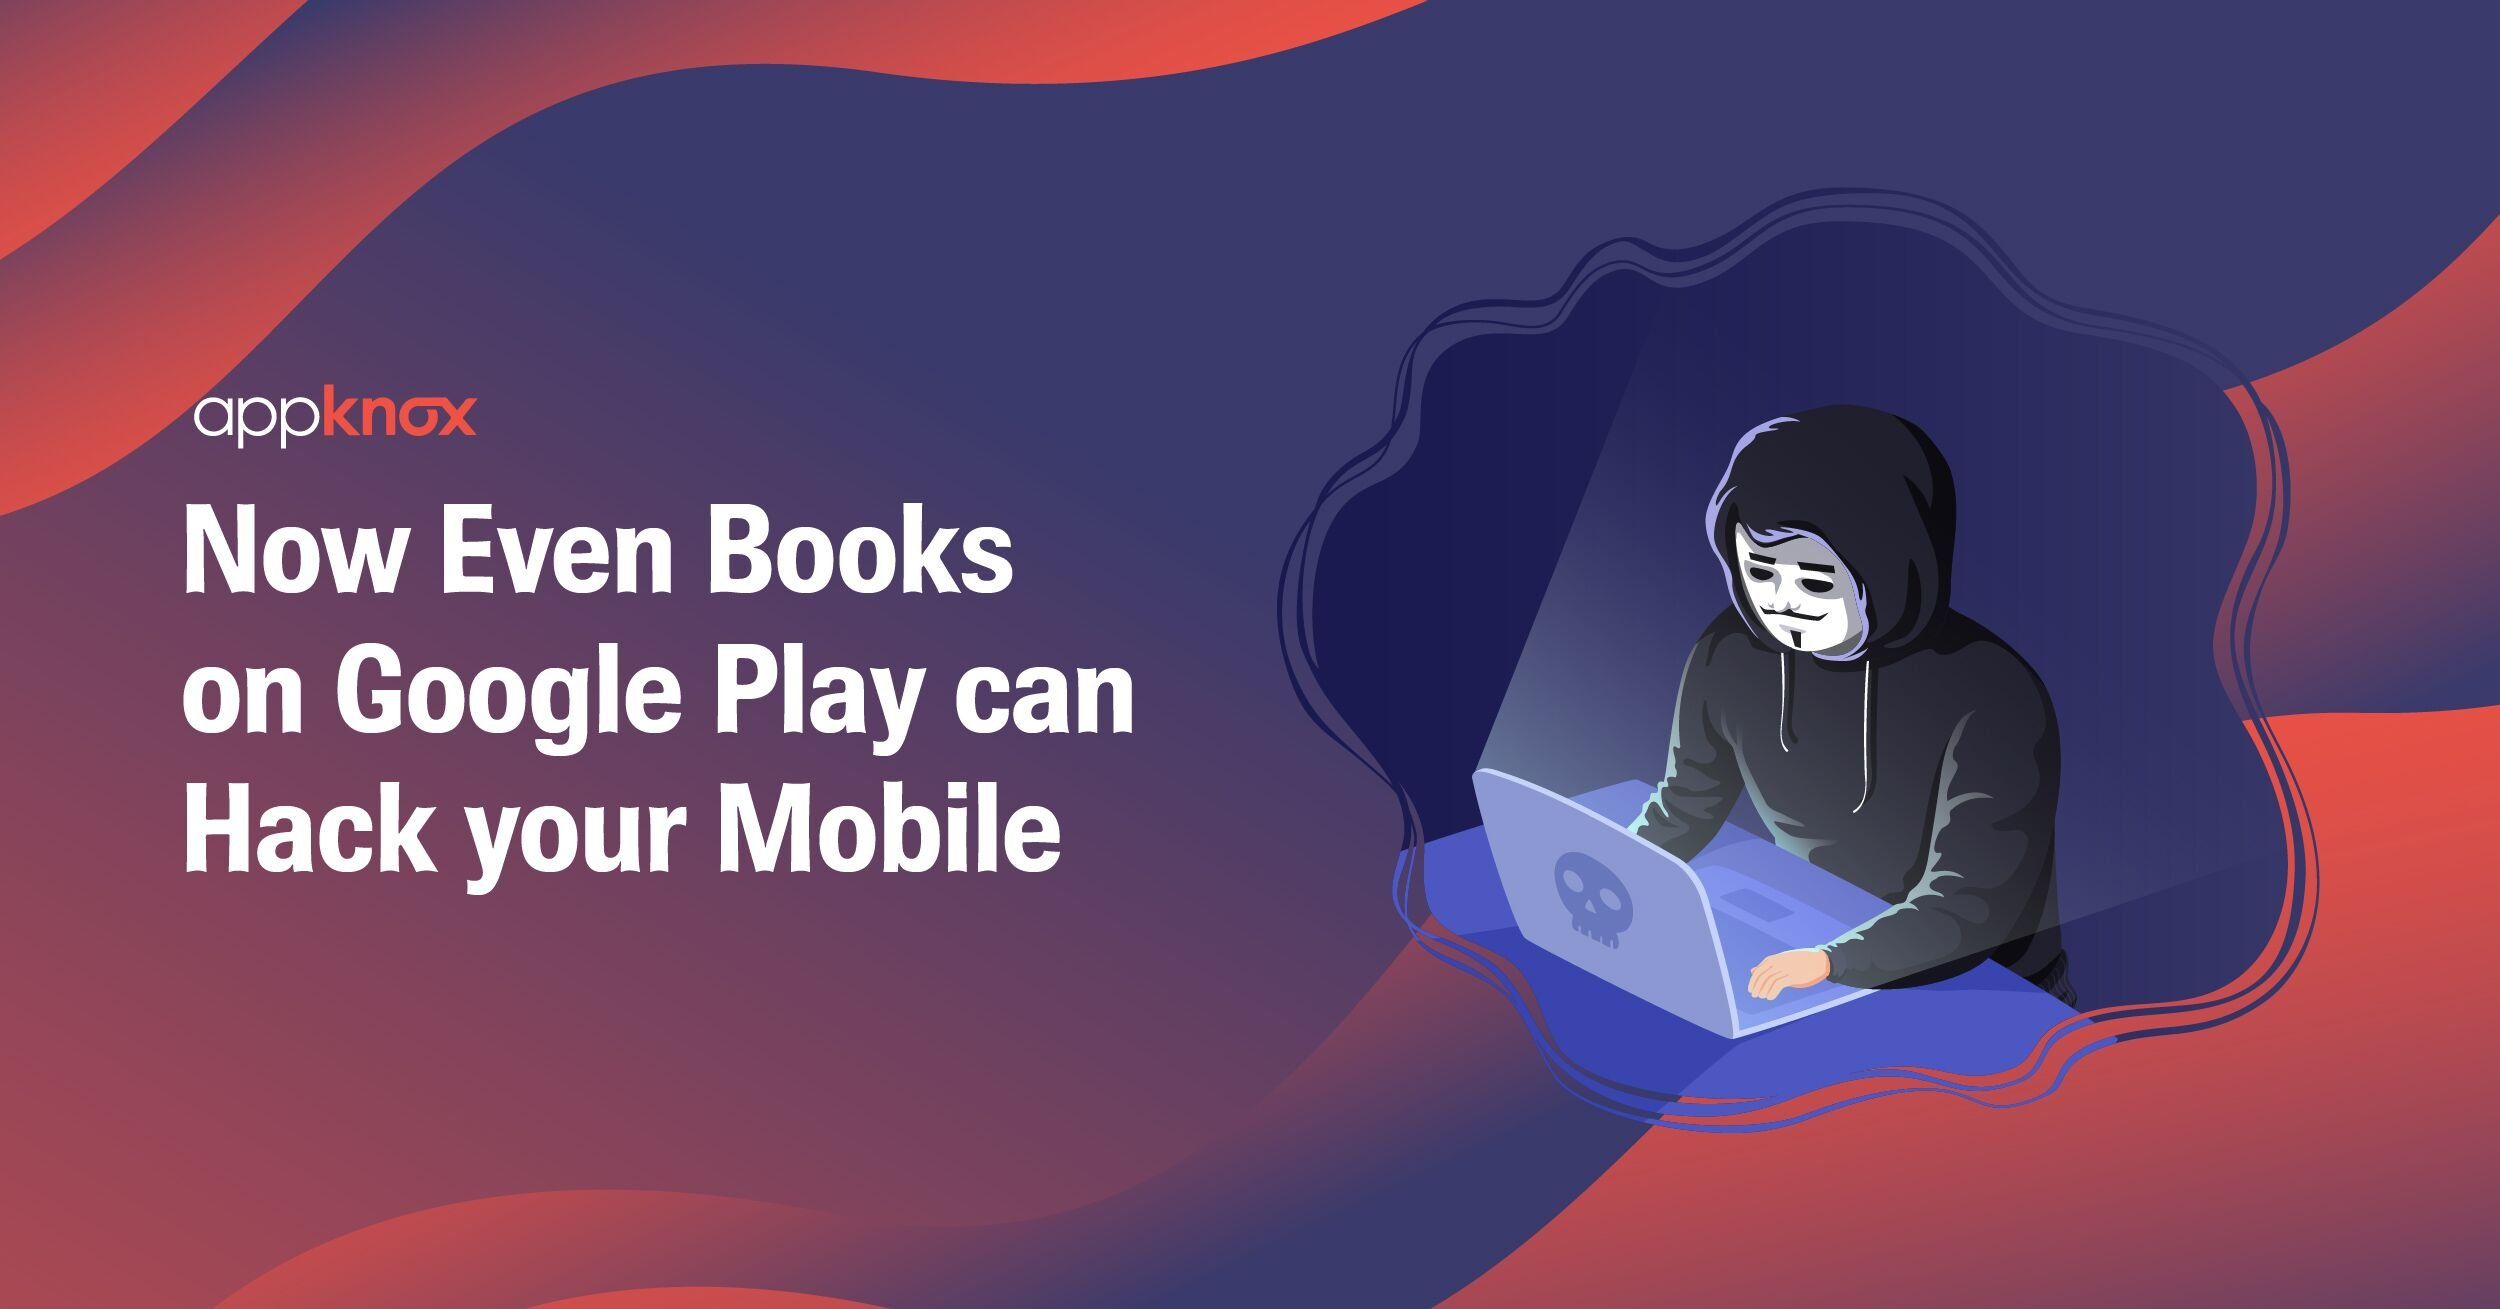 Now Even Books on Google Play Can Hack Your Mobile